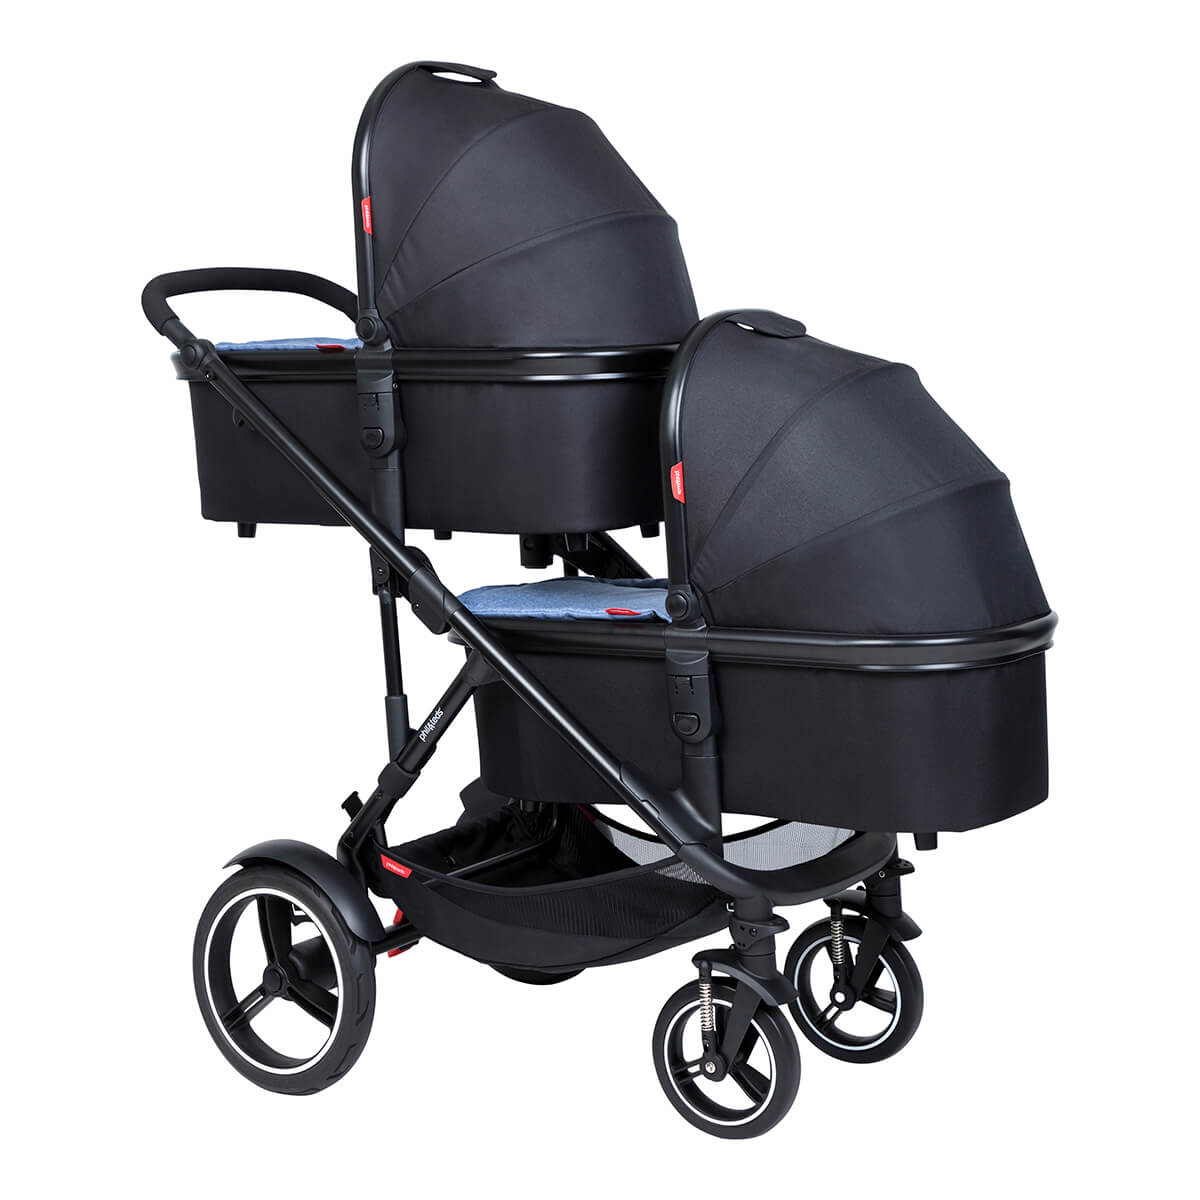 https://cdn.accentuate.io/4509867147361/19793940447402/philteds-voyager-inline-buggy-with-double-snug-carrycots-v1626485372979.jpg?1200x1200